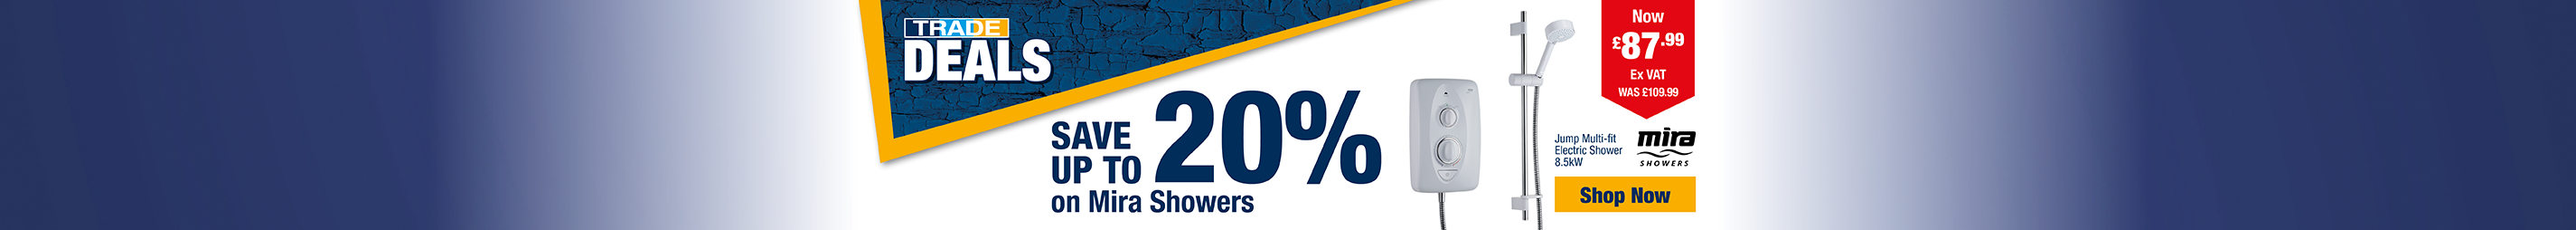 Save Up to 20% on Mira Showers